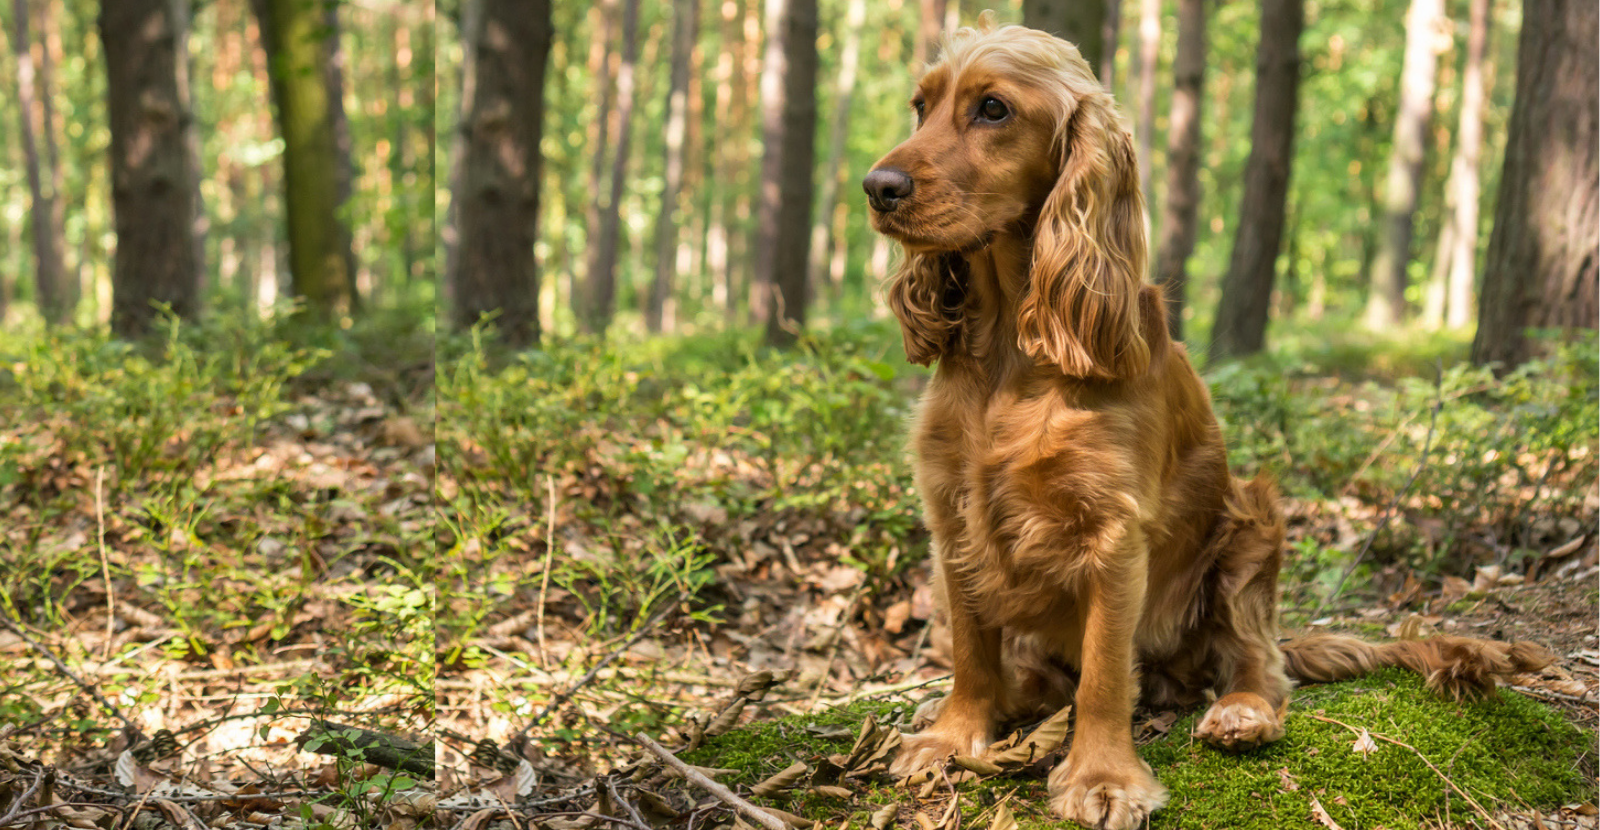 Cocker Spaniels: Beauty, Grace & At Risk for Arthritis